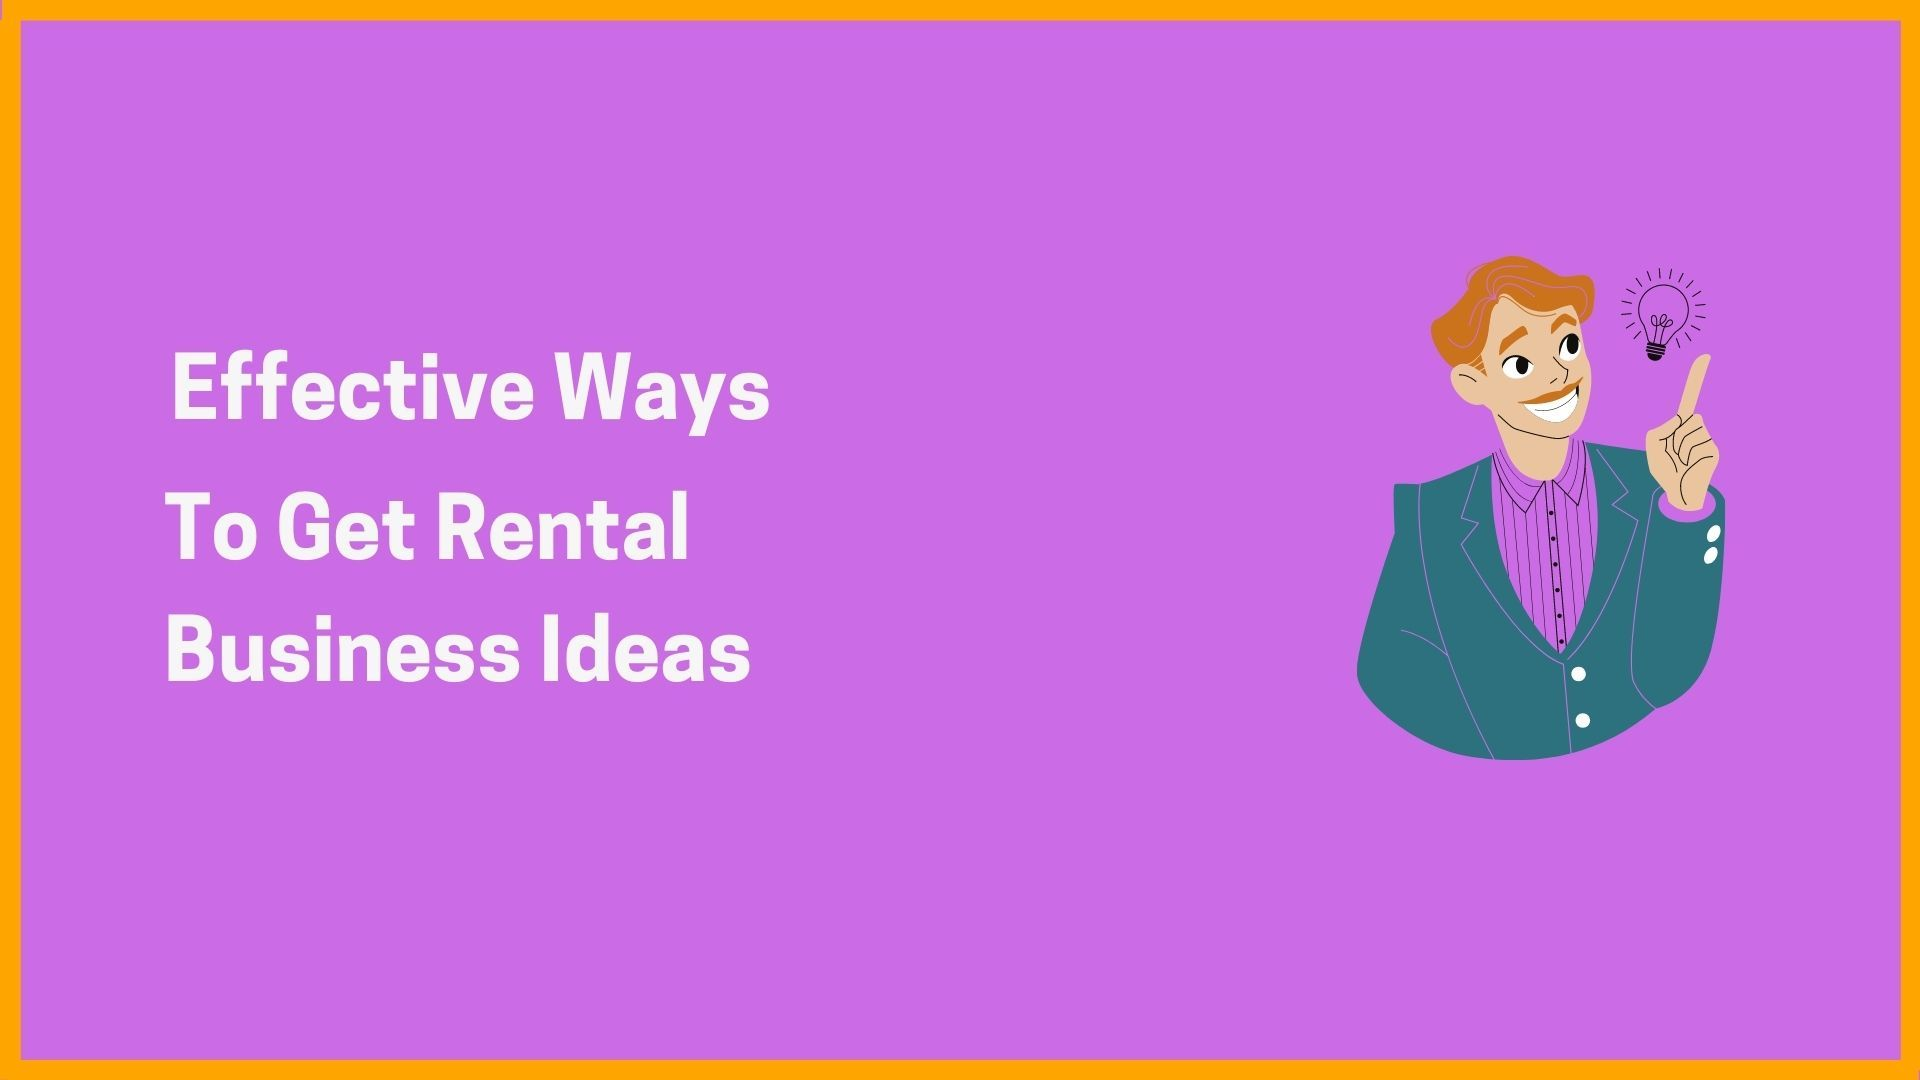 Effective Ideas for starting a Rental Business in 2021